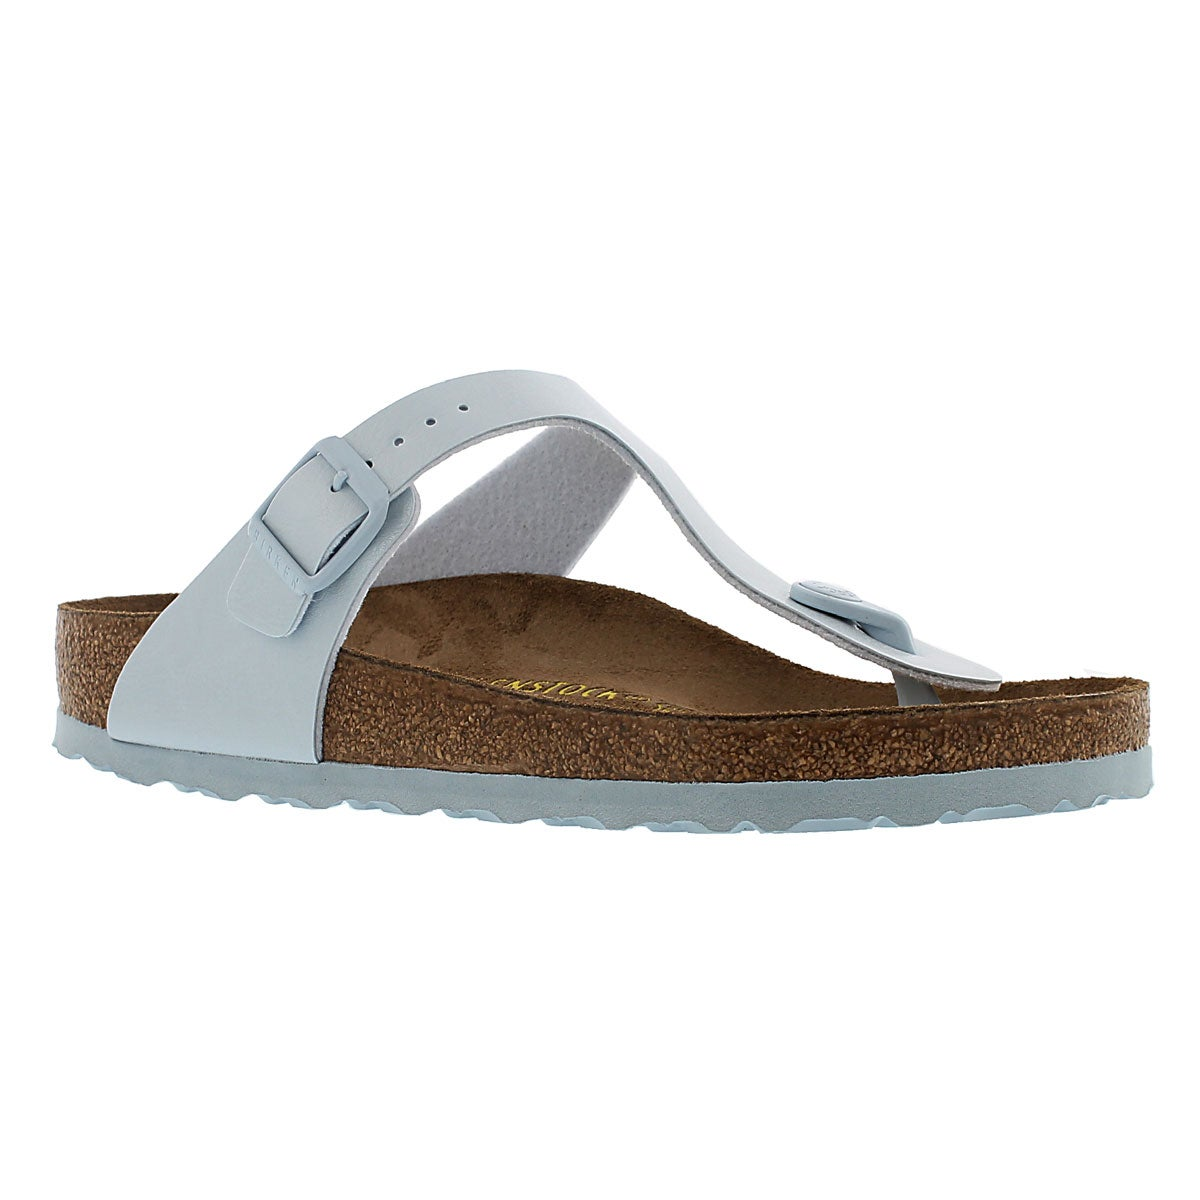 Lds Gizeh baby blue thong sandal